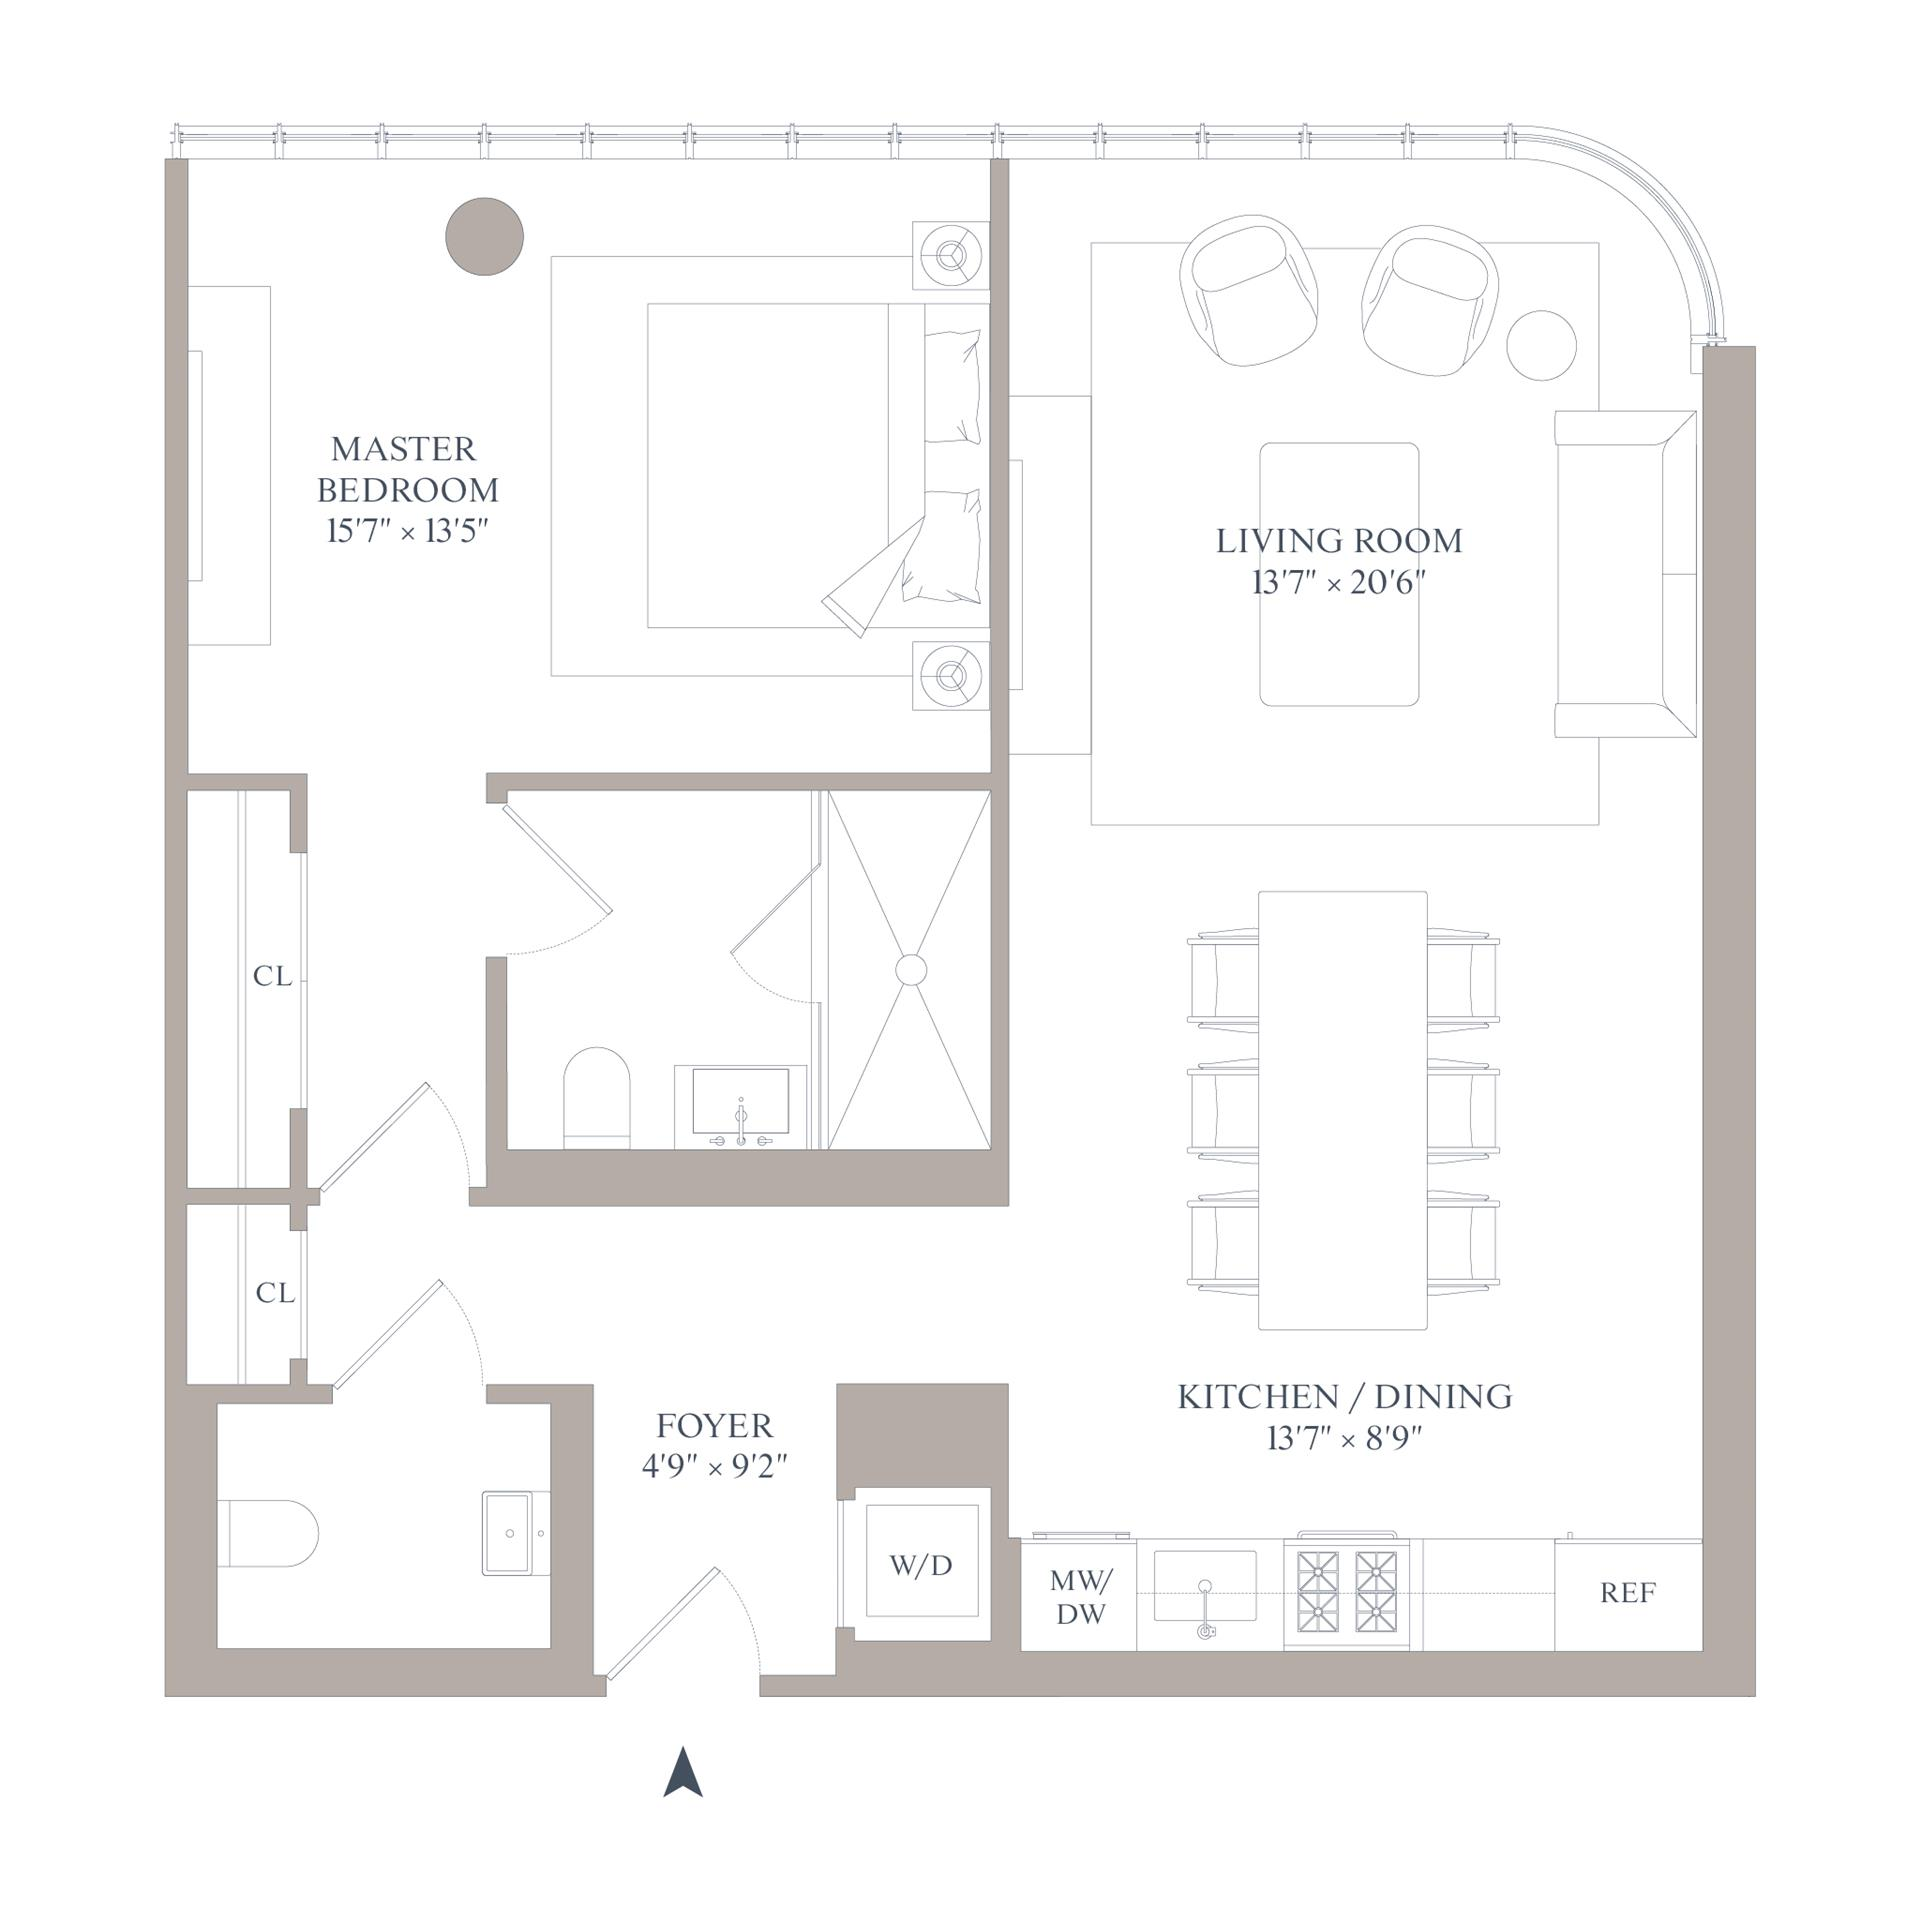 Floor plan of 565 Broome Street, N9D - SoHo - Nolita, New York